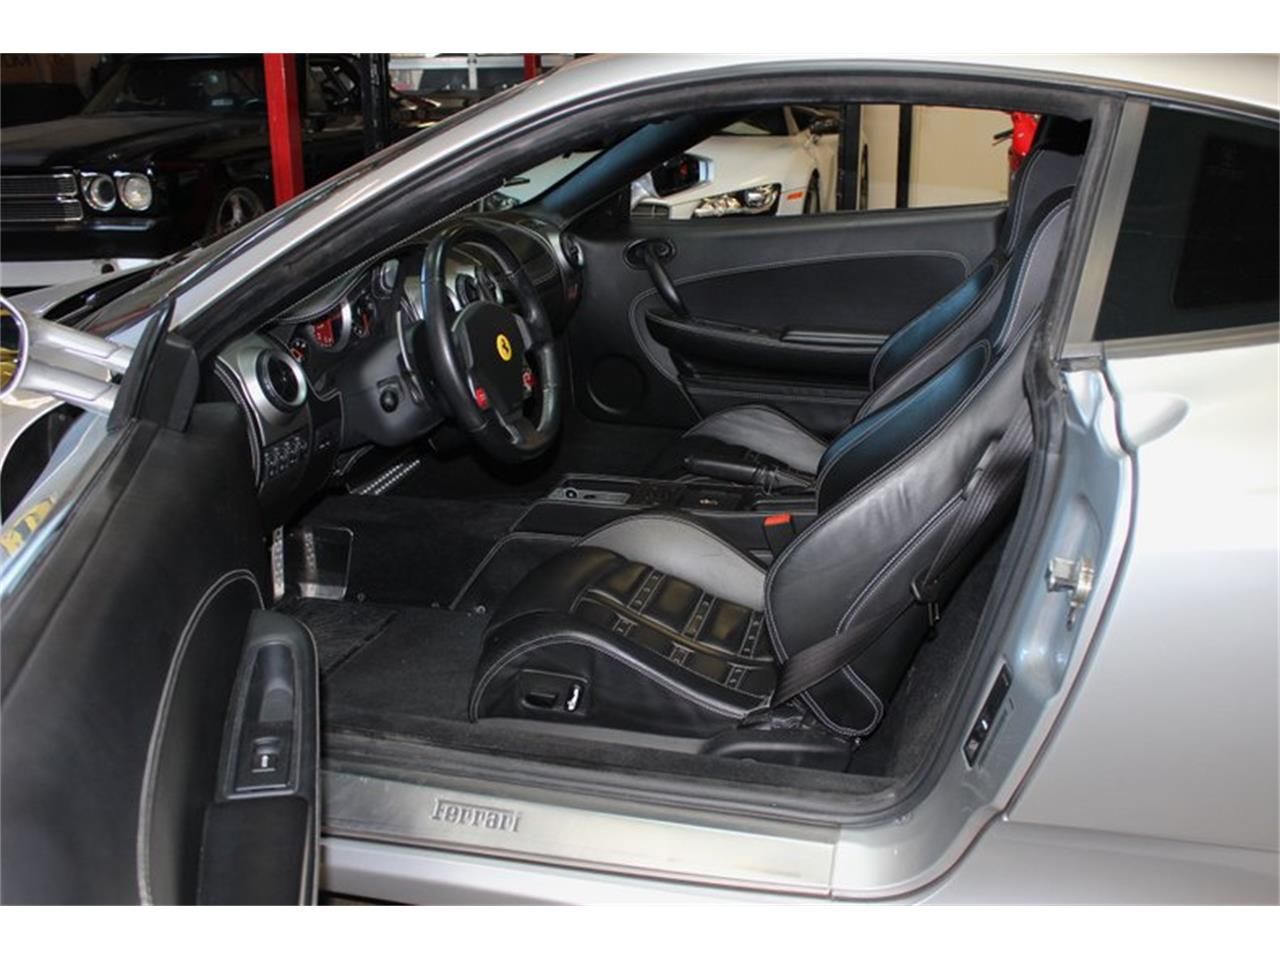 2005 Ferrari F430 for sale in San Carlos, CA – photo 28